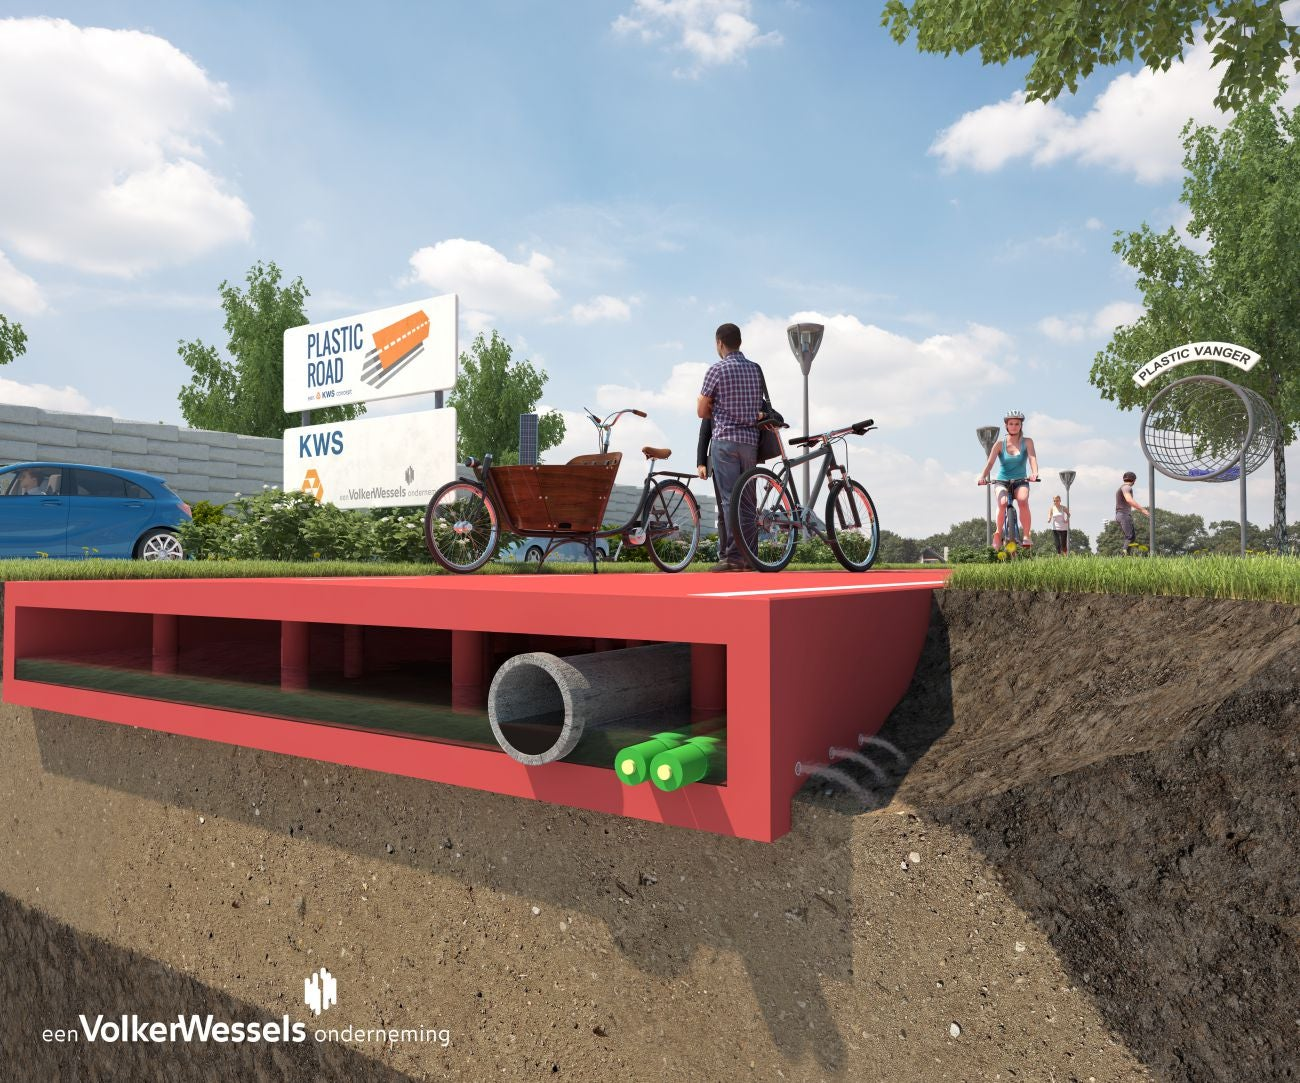 This Company Wants To Test Plastic Roads That Can Be Made In a Factory